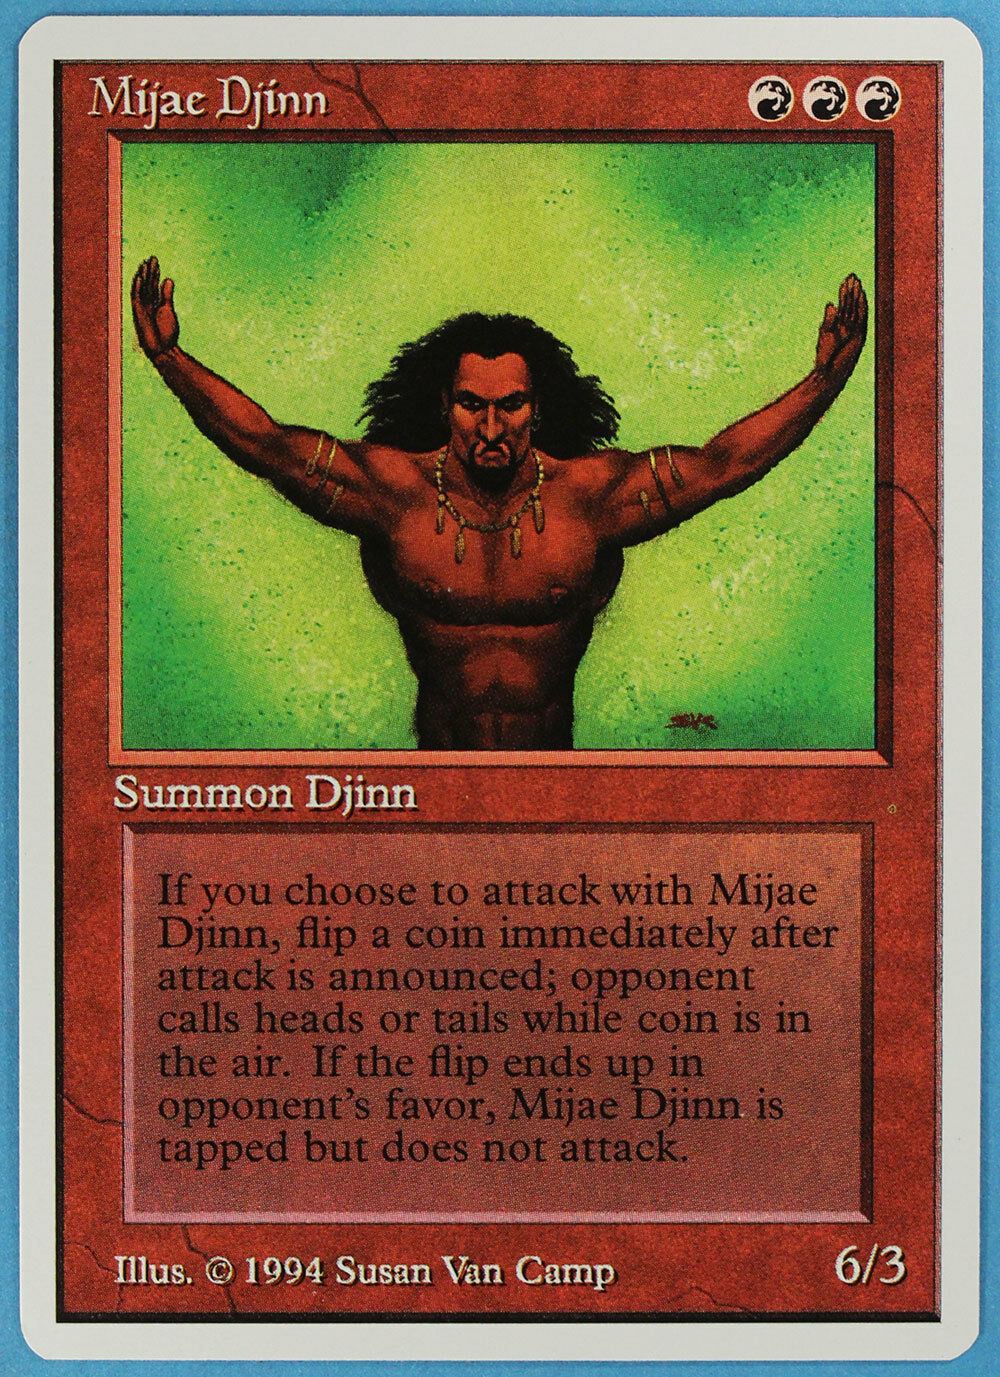 Mijae Mijae Mijae Djinn Summer Magic Edgar NM-M Red Rare MTG CARD (ID) ABUGames fd12dd